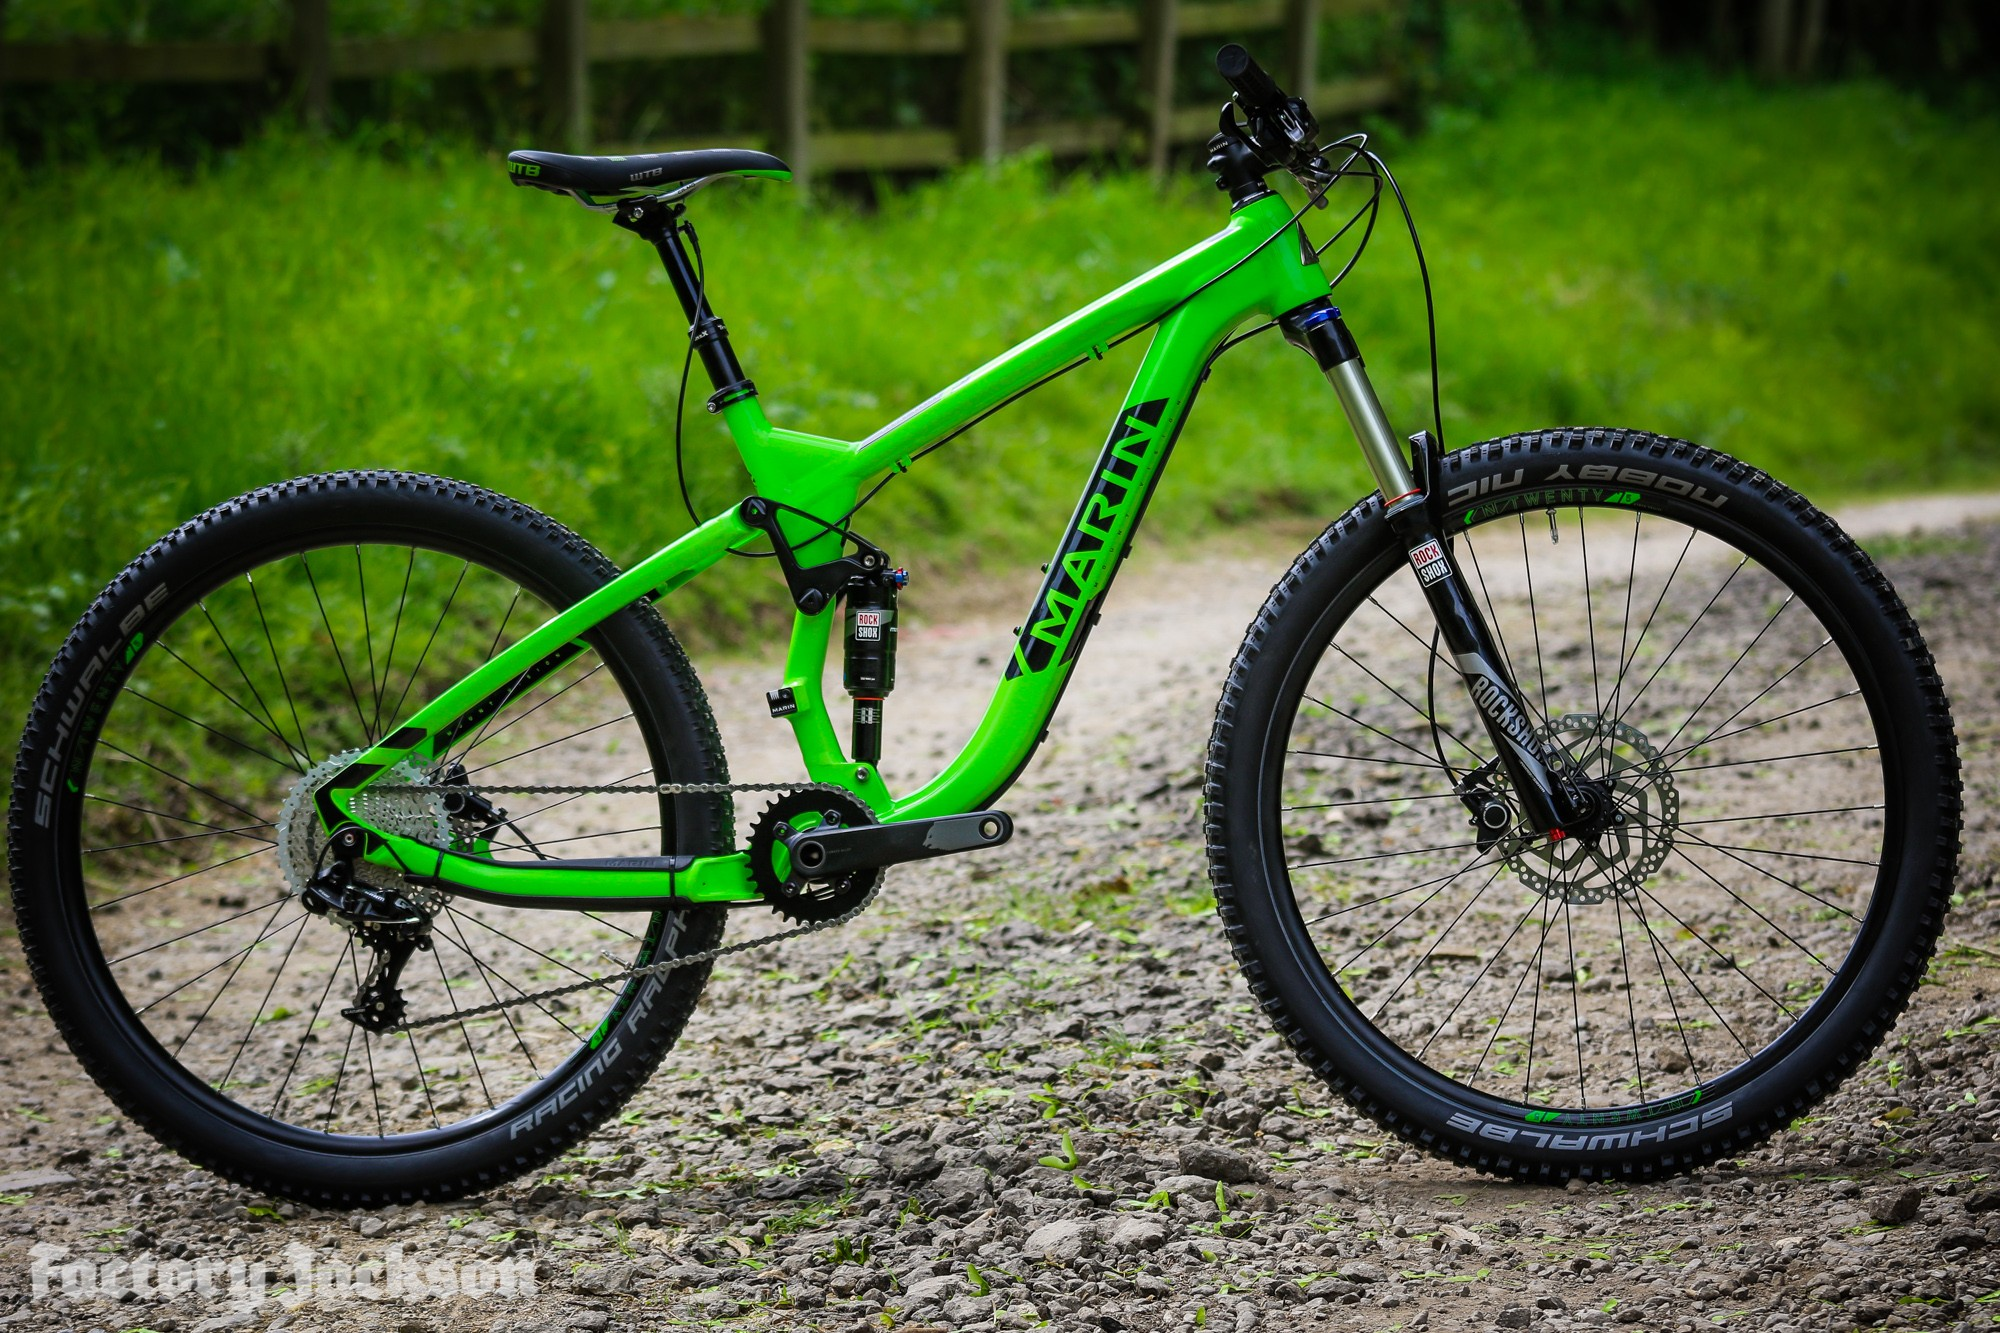 04ed536e55f The 140mm travel Mount Vision is the main trail bike in the Marin 2017 range  – and has models starting with Alloy frames from £1600 up to £5000 for the  Pro ...